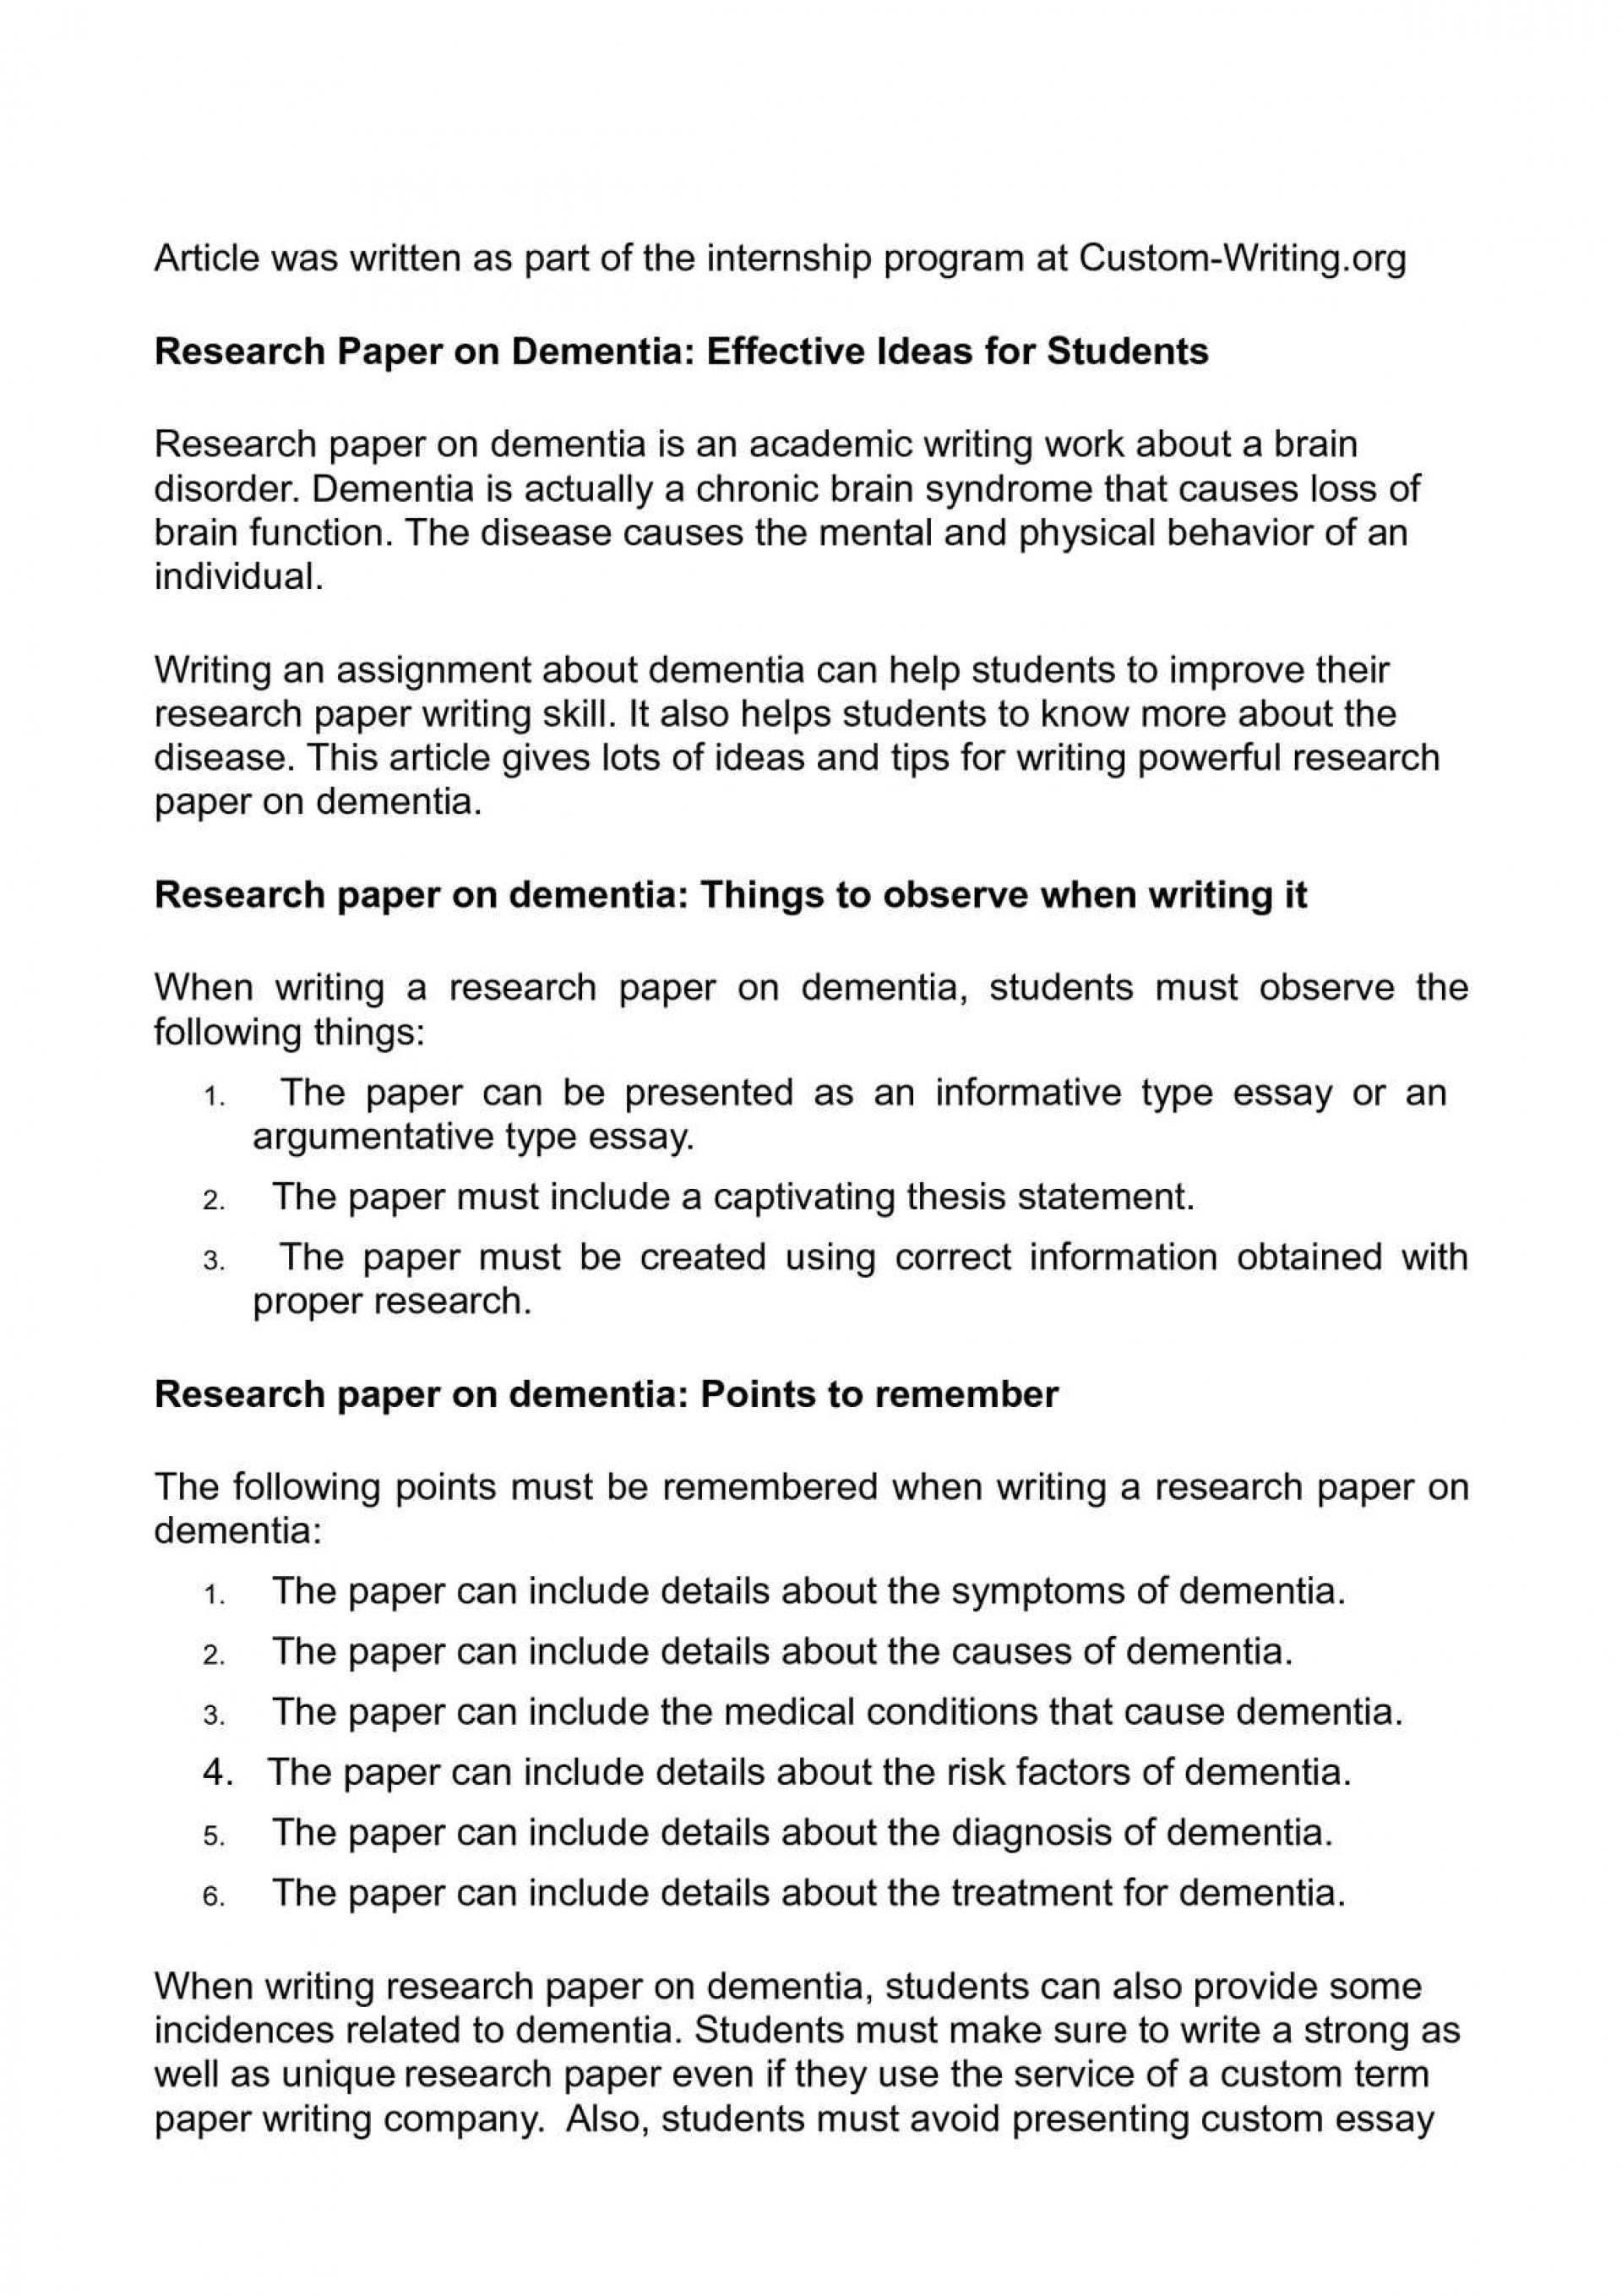 006 Research Paper P1 Custom Written Term Phenomenal Papers 1920